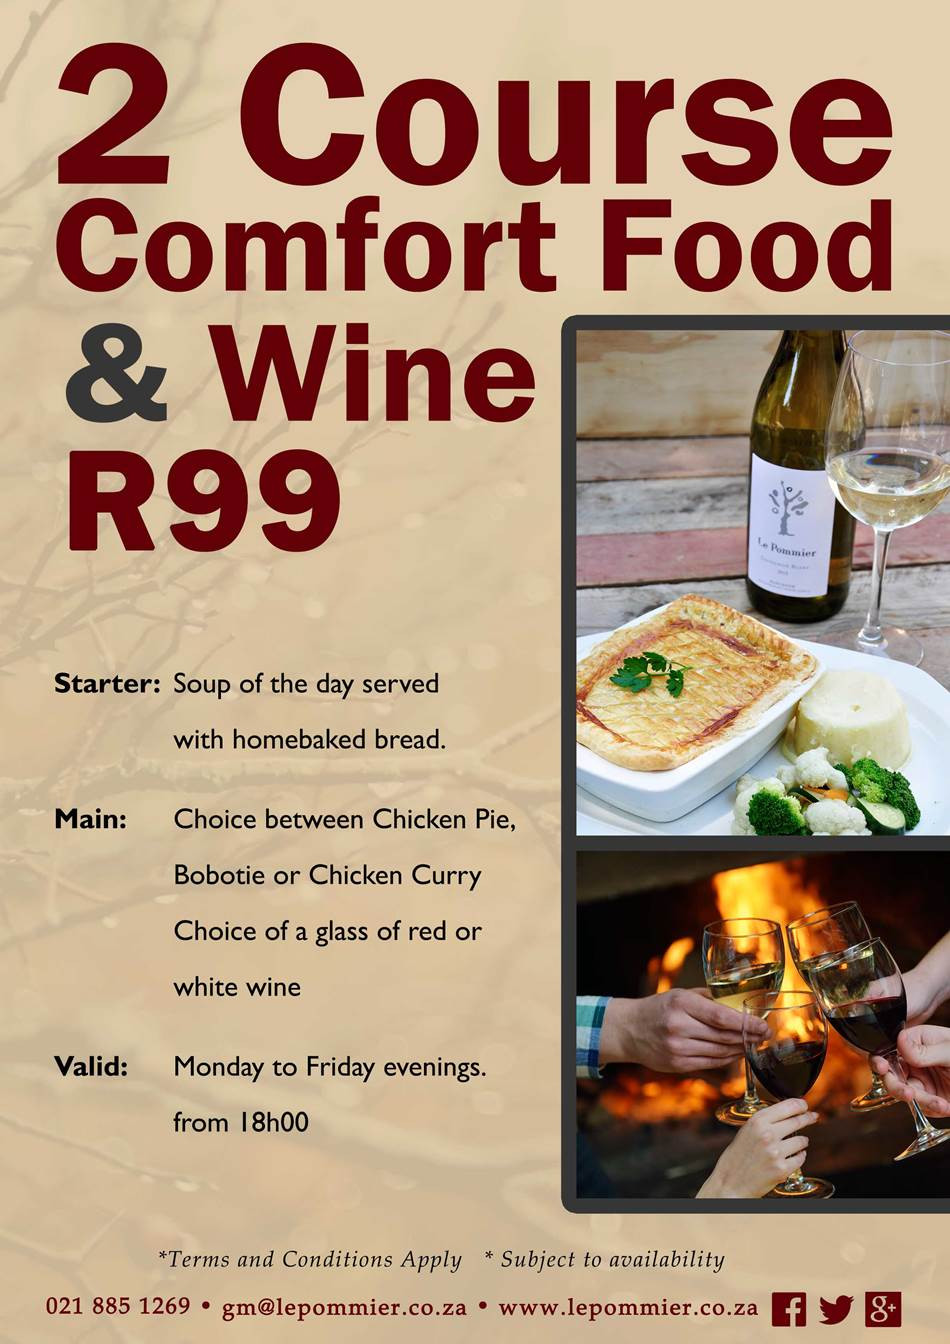 Restaurants With Dinner For 2 Specials  R99 Dinner & Wine Special at Le Pommier